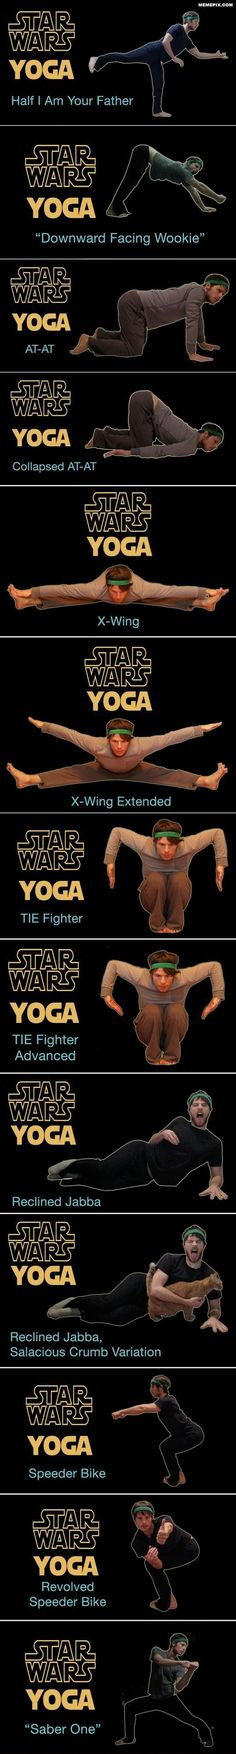 Star Wars Yoga!